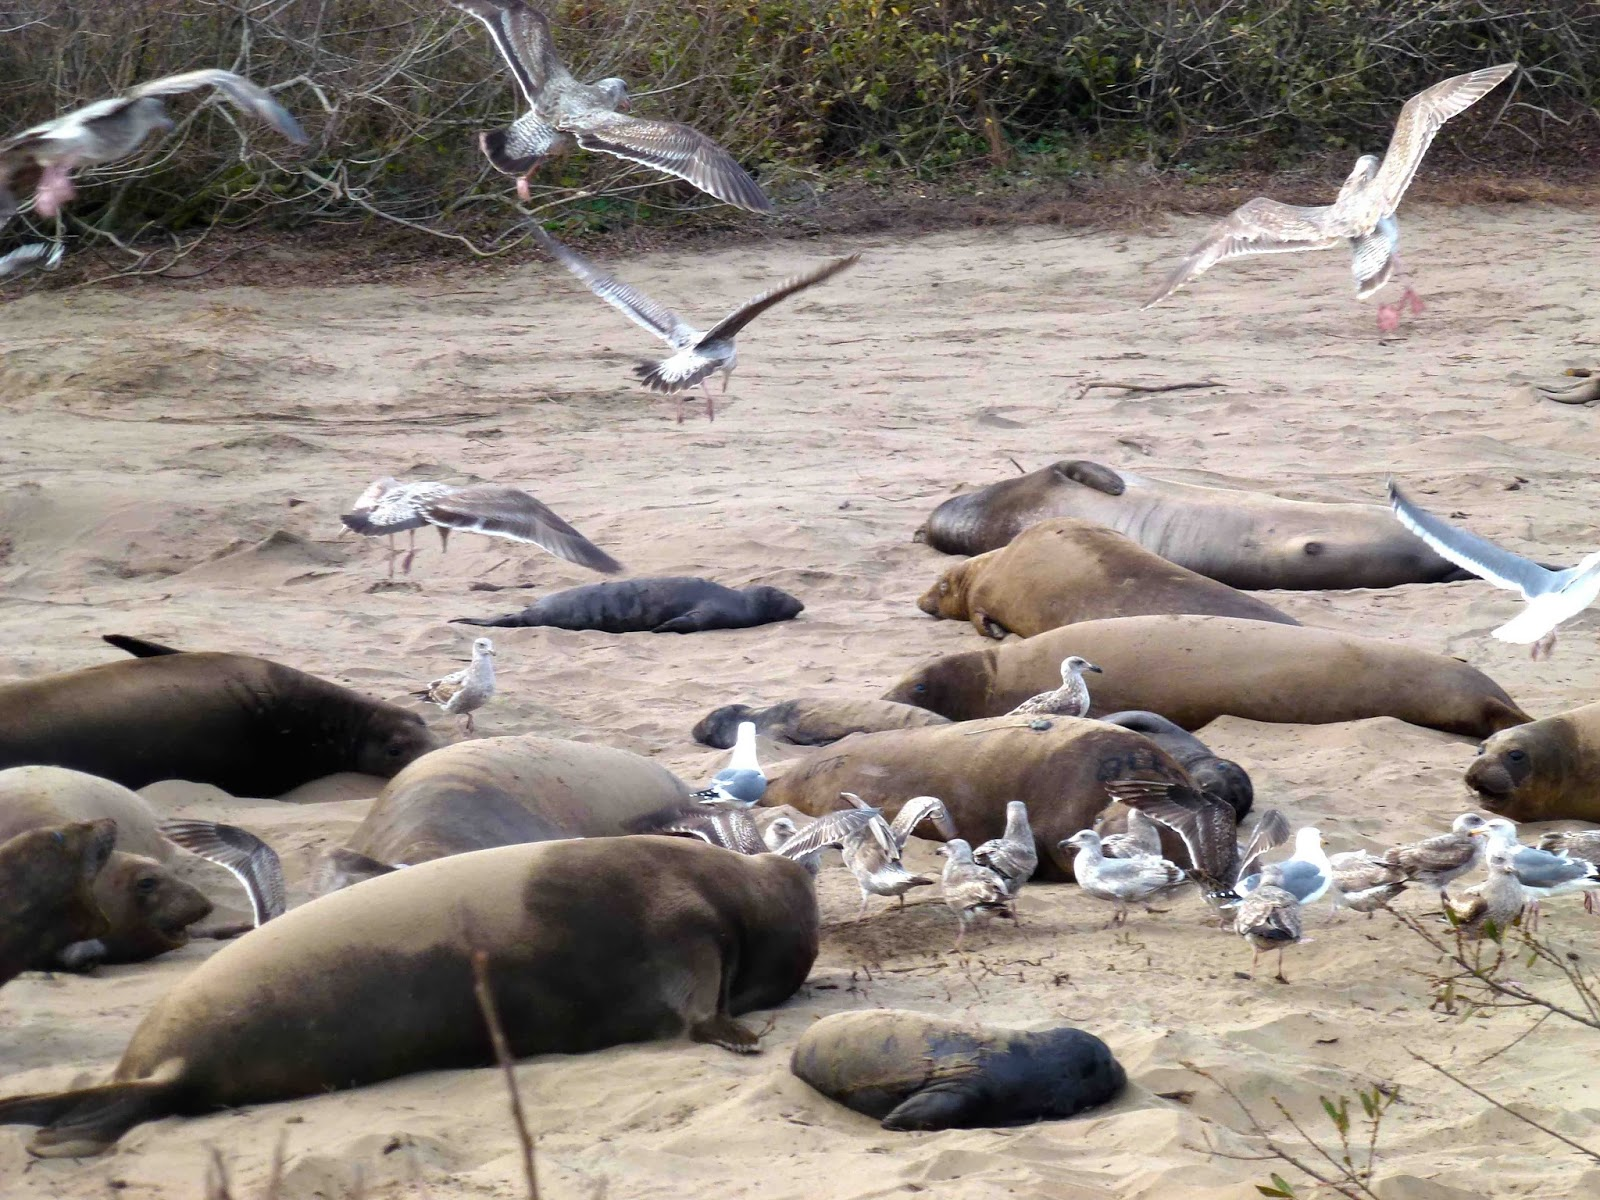 Seagulls fight over the afterbirth of elephant seals. Black newborn seal is in the foreground.